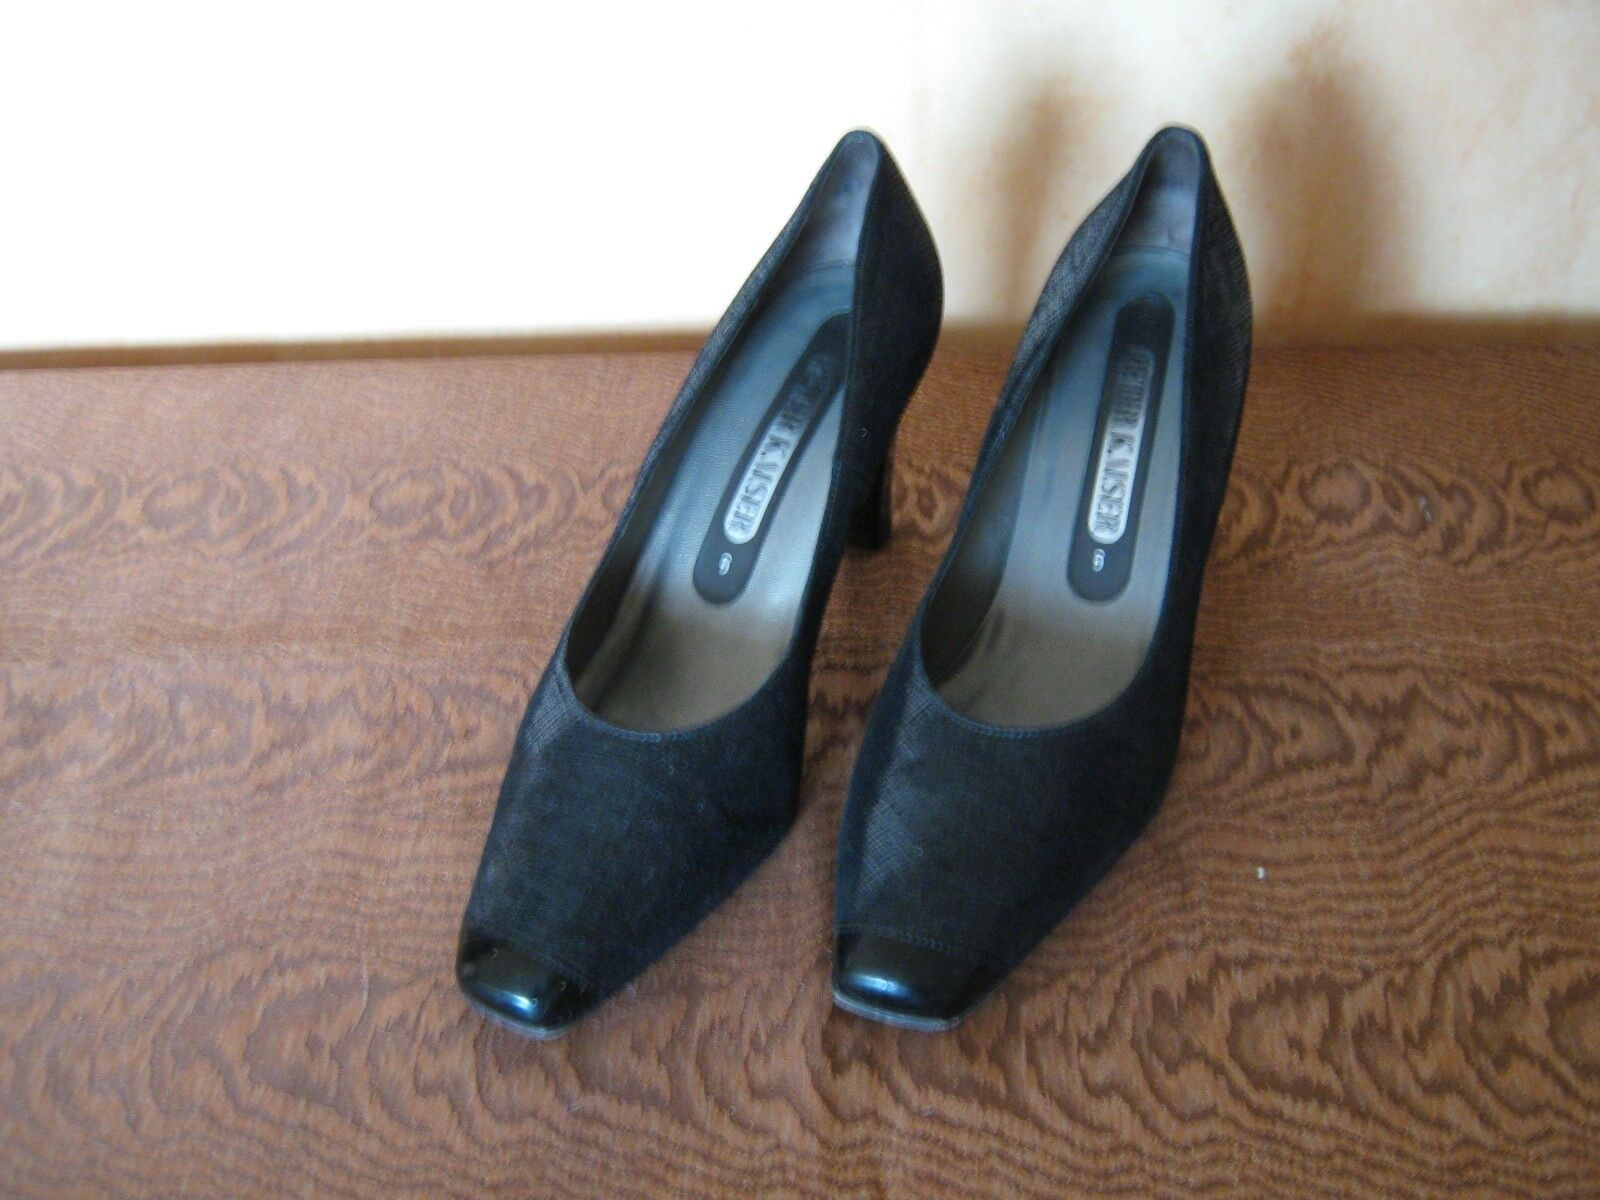 PETER KAISER DAMENSCHUH HIGHT HEELS PUMPS SCHWARZ GR-6